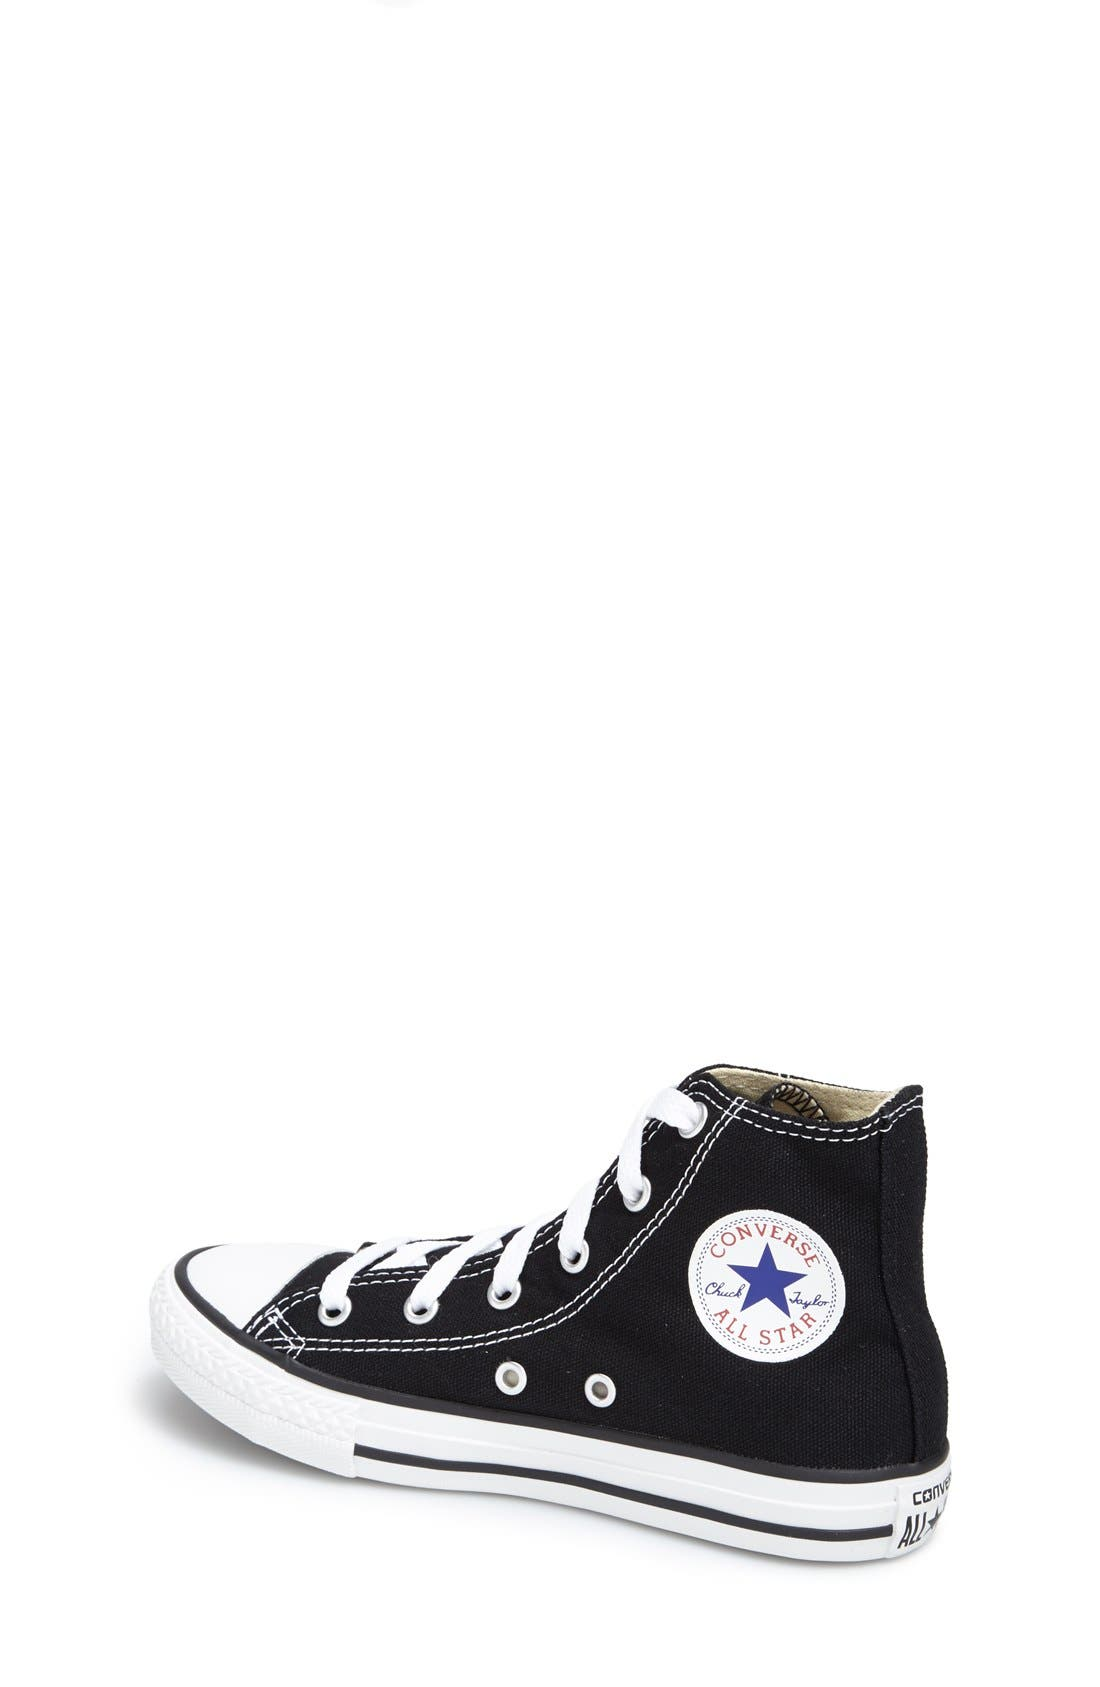 Alternate Image 2  - Converse Chuck Taylor® High Top Sneaker (Toddler, Little Kid & Big Kid)